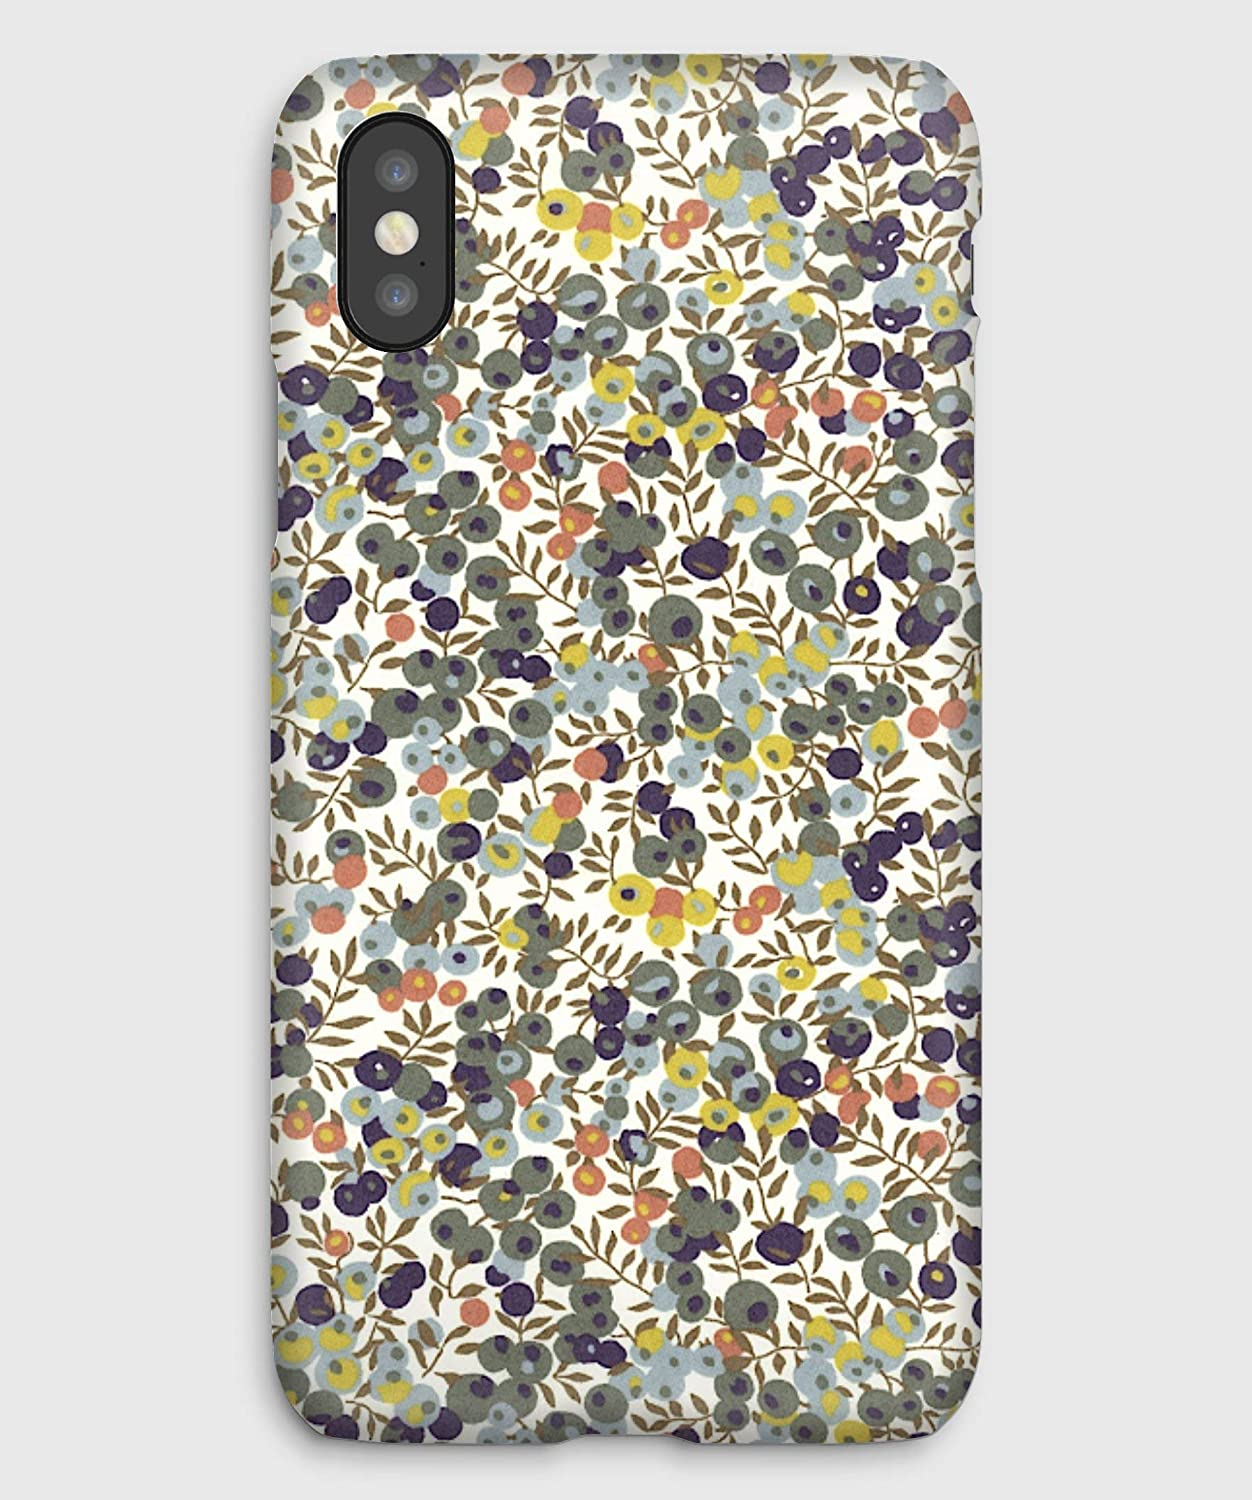 Liberty Wiltshire Provence, coque pour iPhone XS, XS Max, XR, X, 8, 8+, 7, 7+, 6S, 6, 6S+, 6+, 5C, 5, 5S, 5SE, 4S, 4,